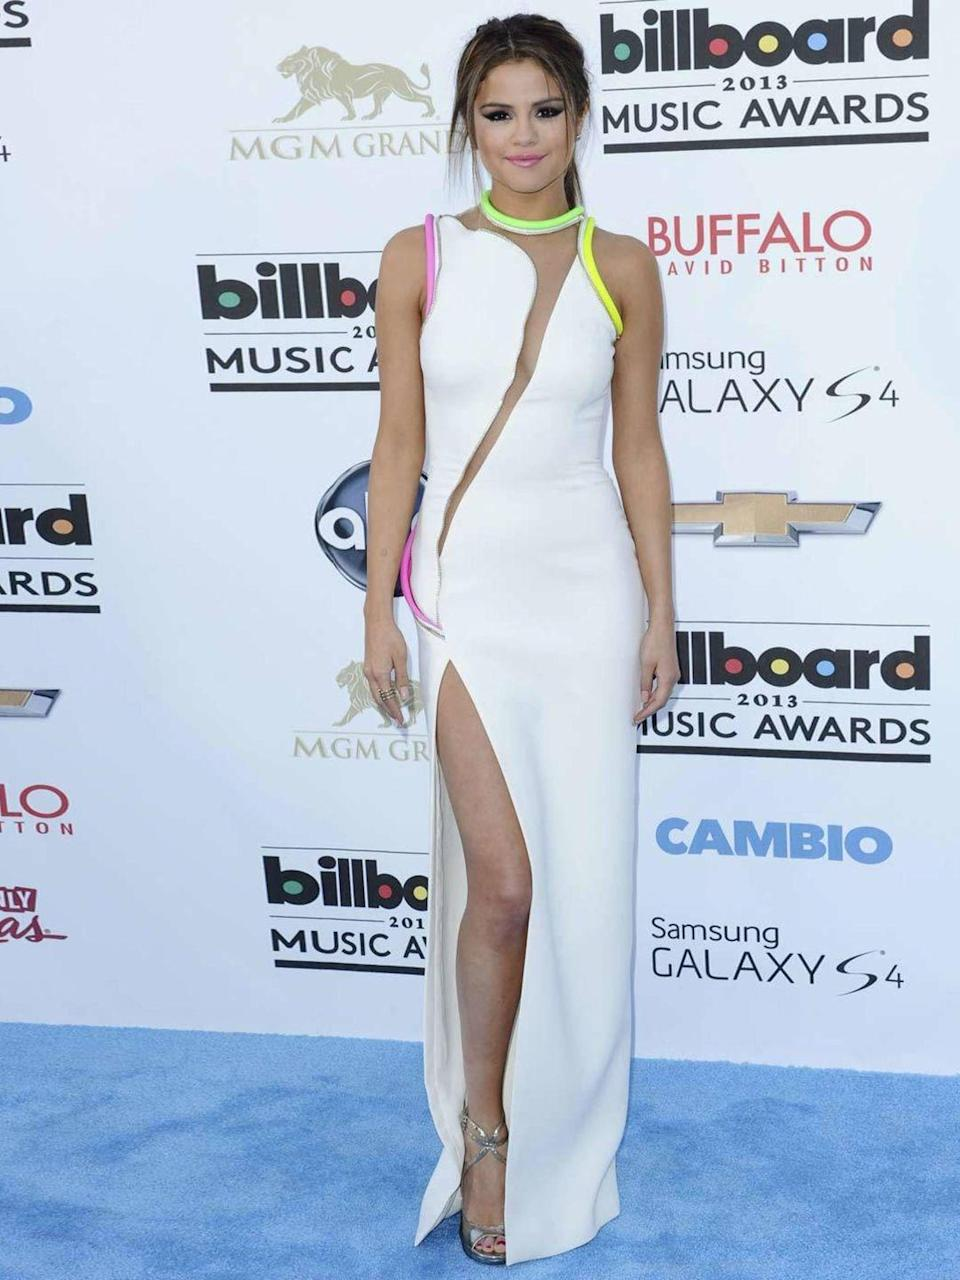 <p>Selena Gomez attends the Billboard Music Awards wearing a Atelier Versace dress with a thigh high slit, Mat 2013.</p>